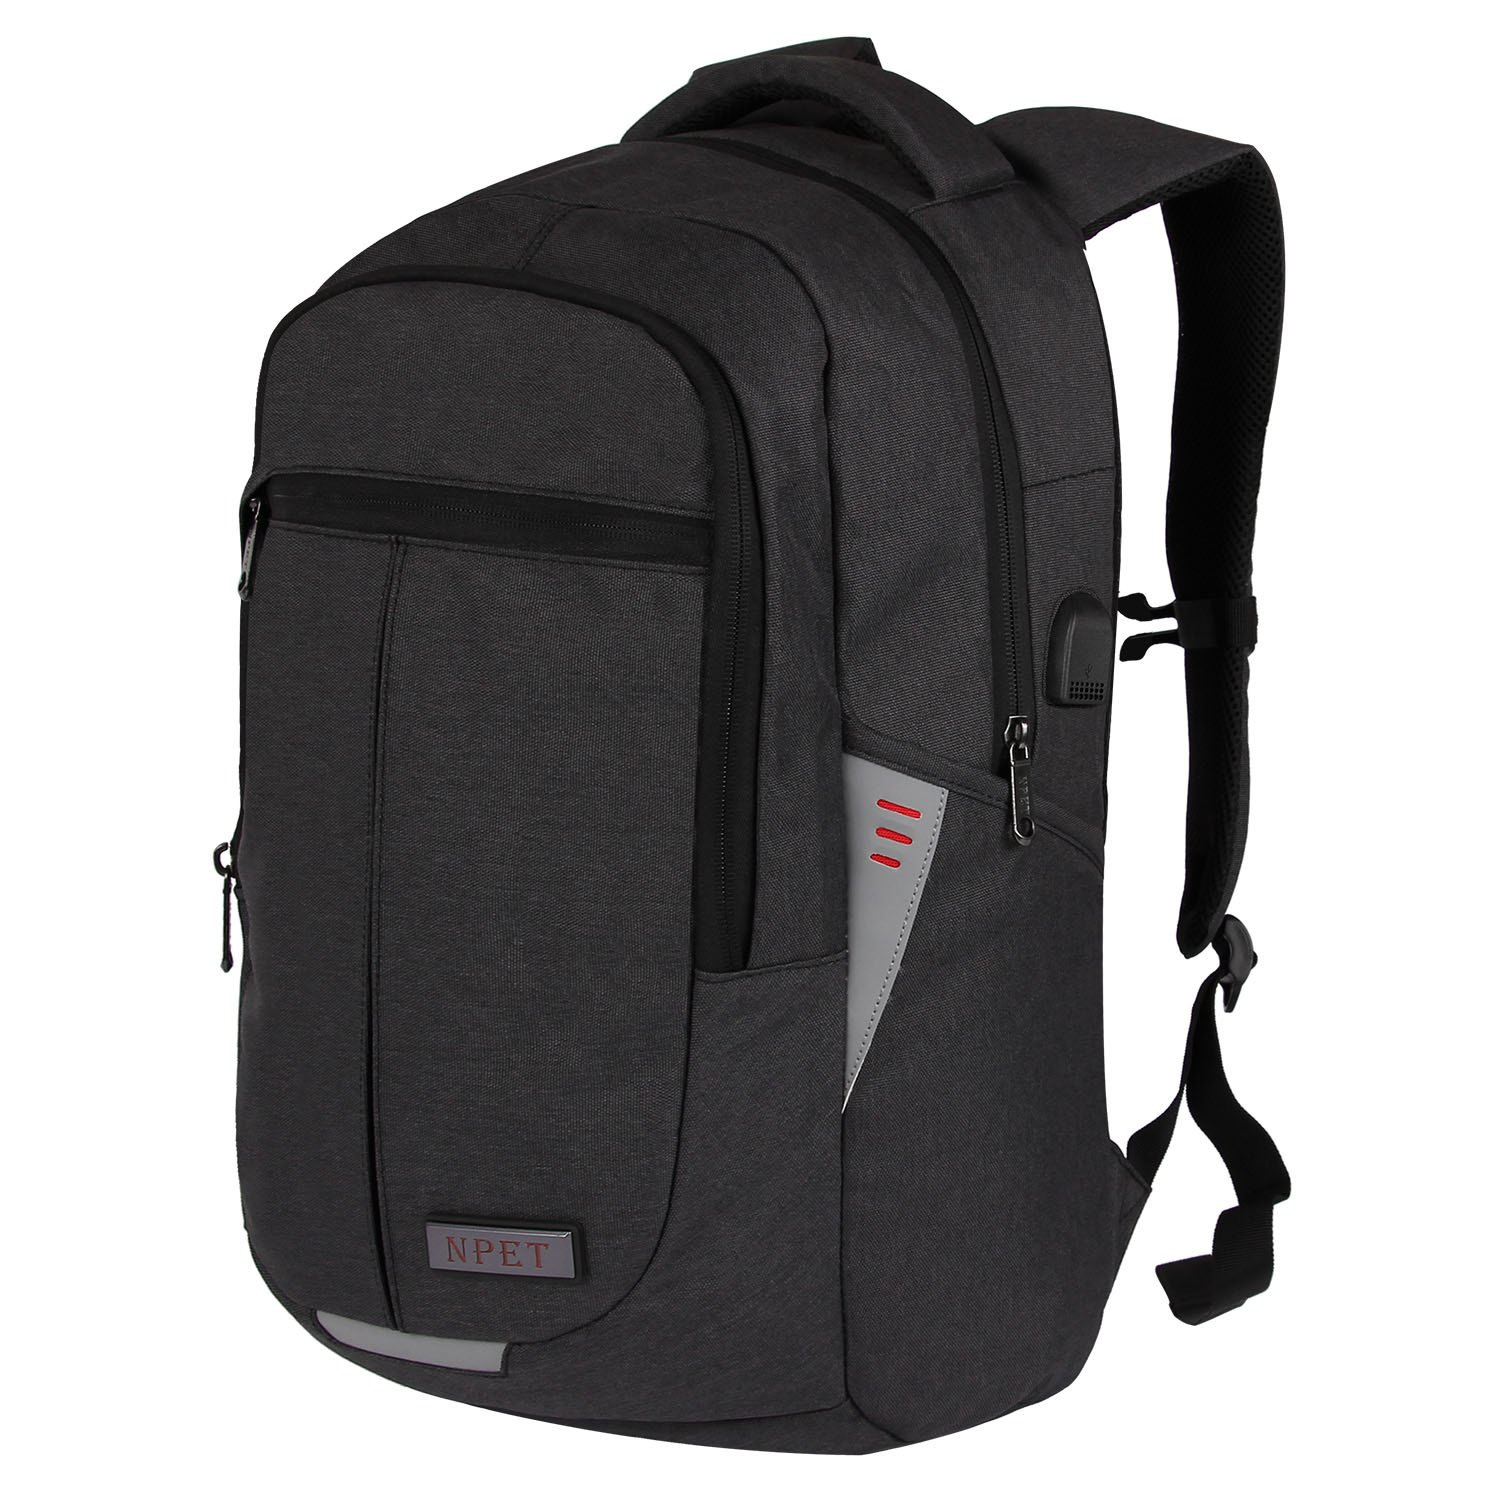 Business Laptop Backpack, NPET Anti-Theft Waterproof Travel Backpack with USB Charging Port High-Visible Reflective Strip Survival Whistle College School Bookbag for Women & Men - Grey Thoth E-commerce Co. Ltd TTUS-CABPBS010GY